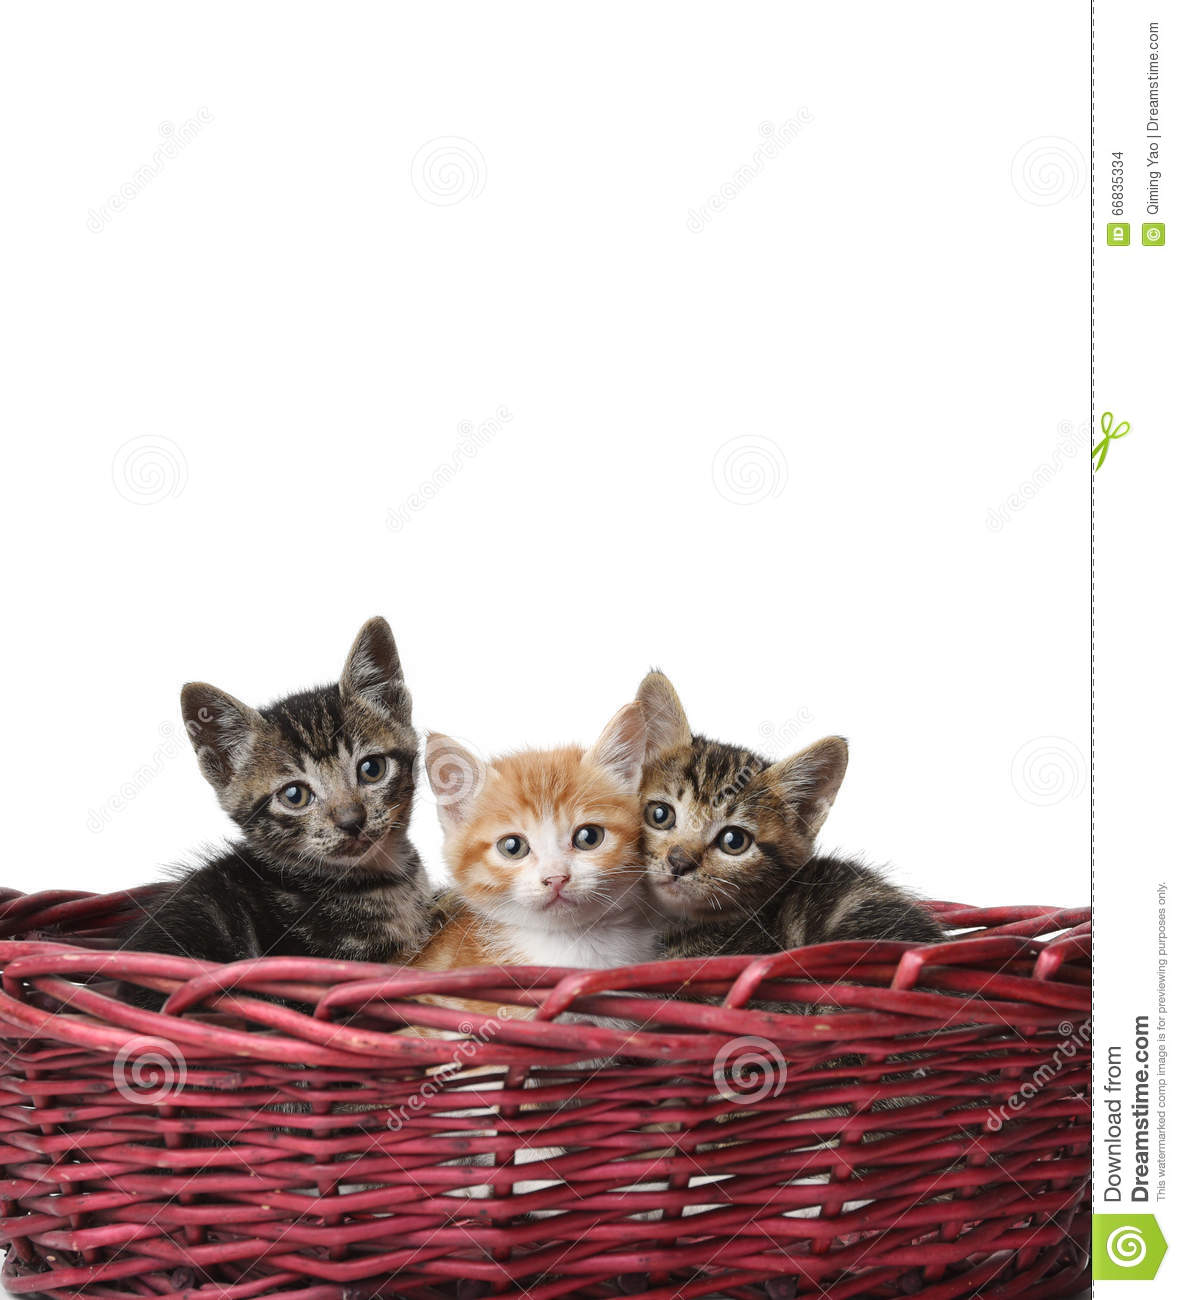 Cute Cats In The Basket Stock Photo - Image: 66835334